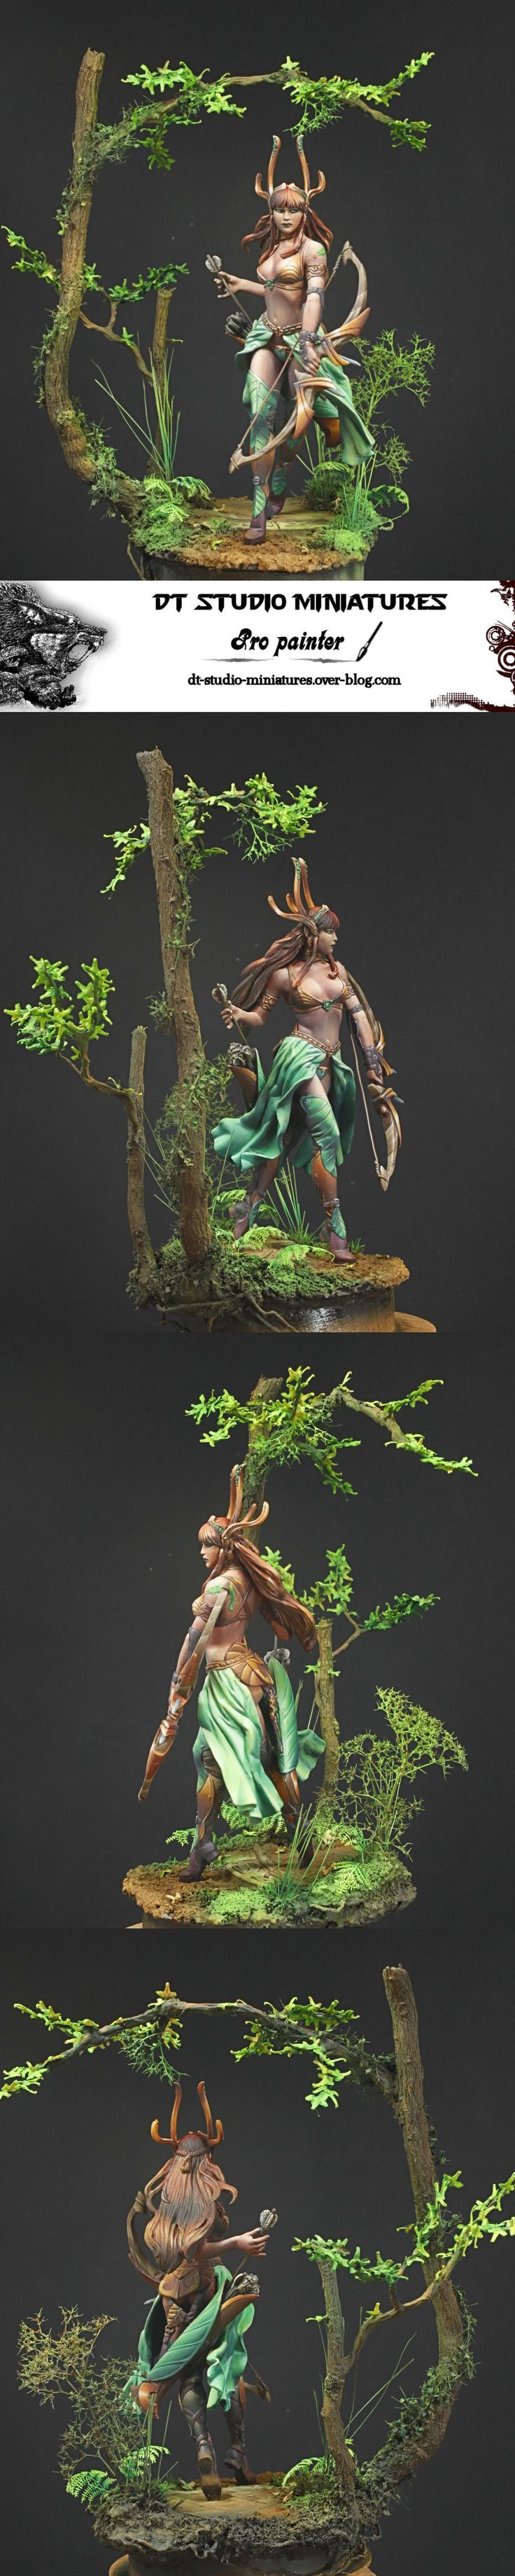 Wood elf by CoolminiorNot poster Aphorys